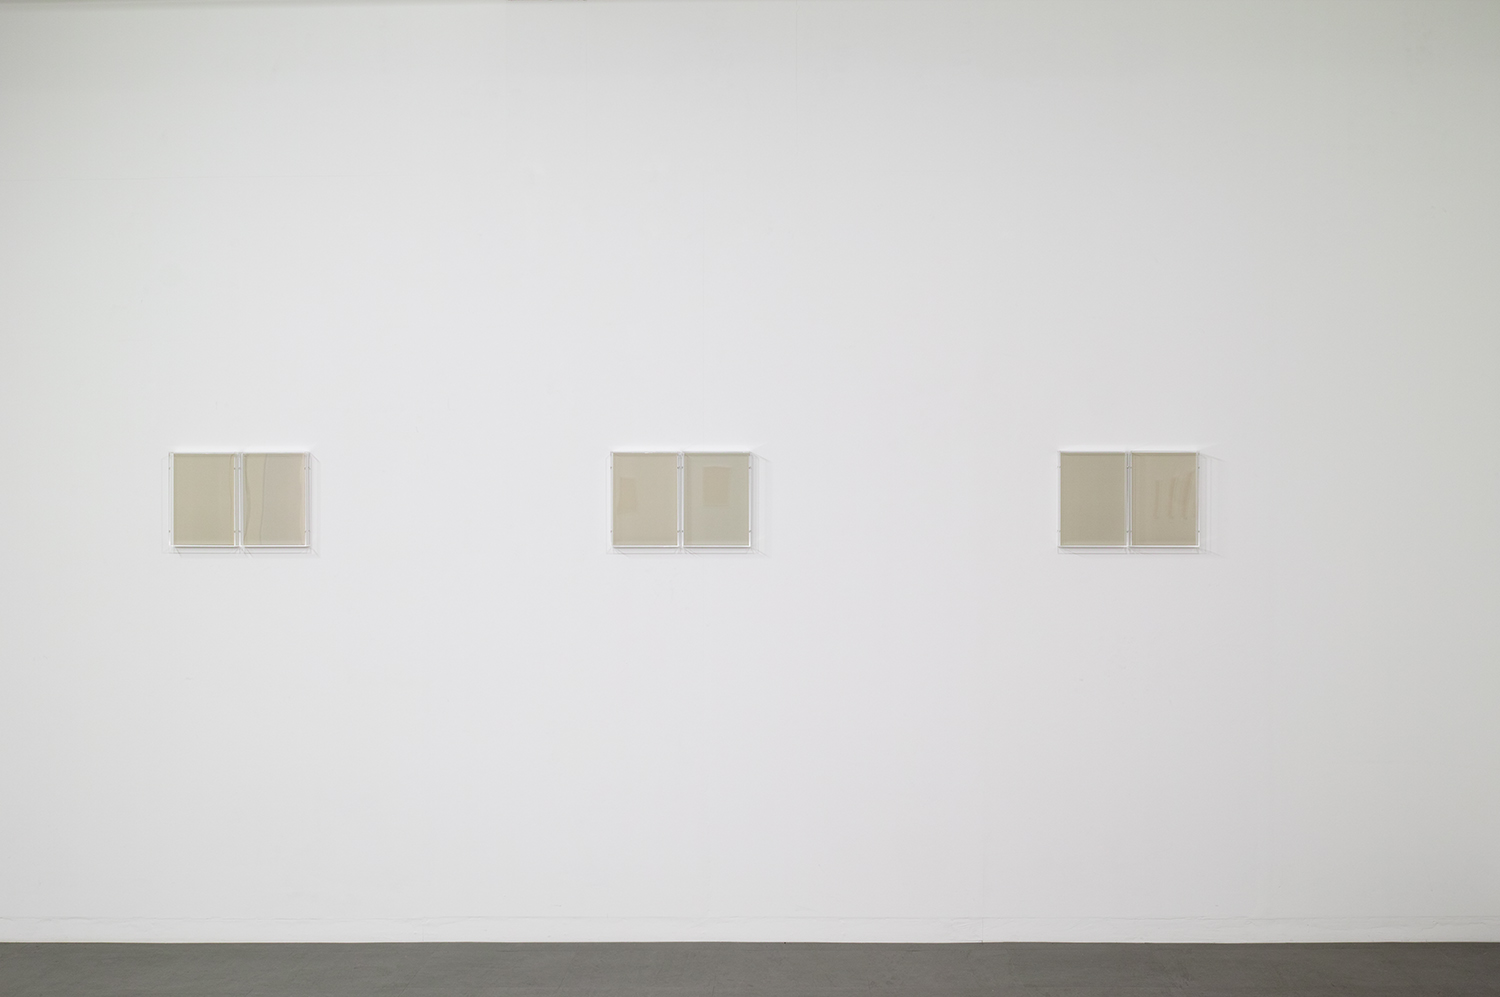 <strong>Untitled Grey</strong><br>紙、アクリルボックス、木材、紫外線 22x30.7x5.4cm each(set of 2) 2018